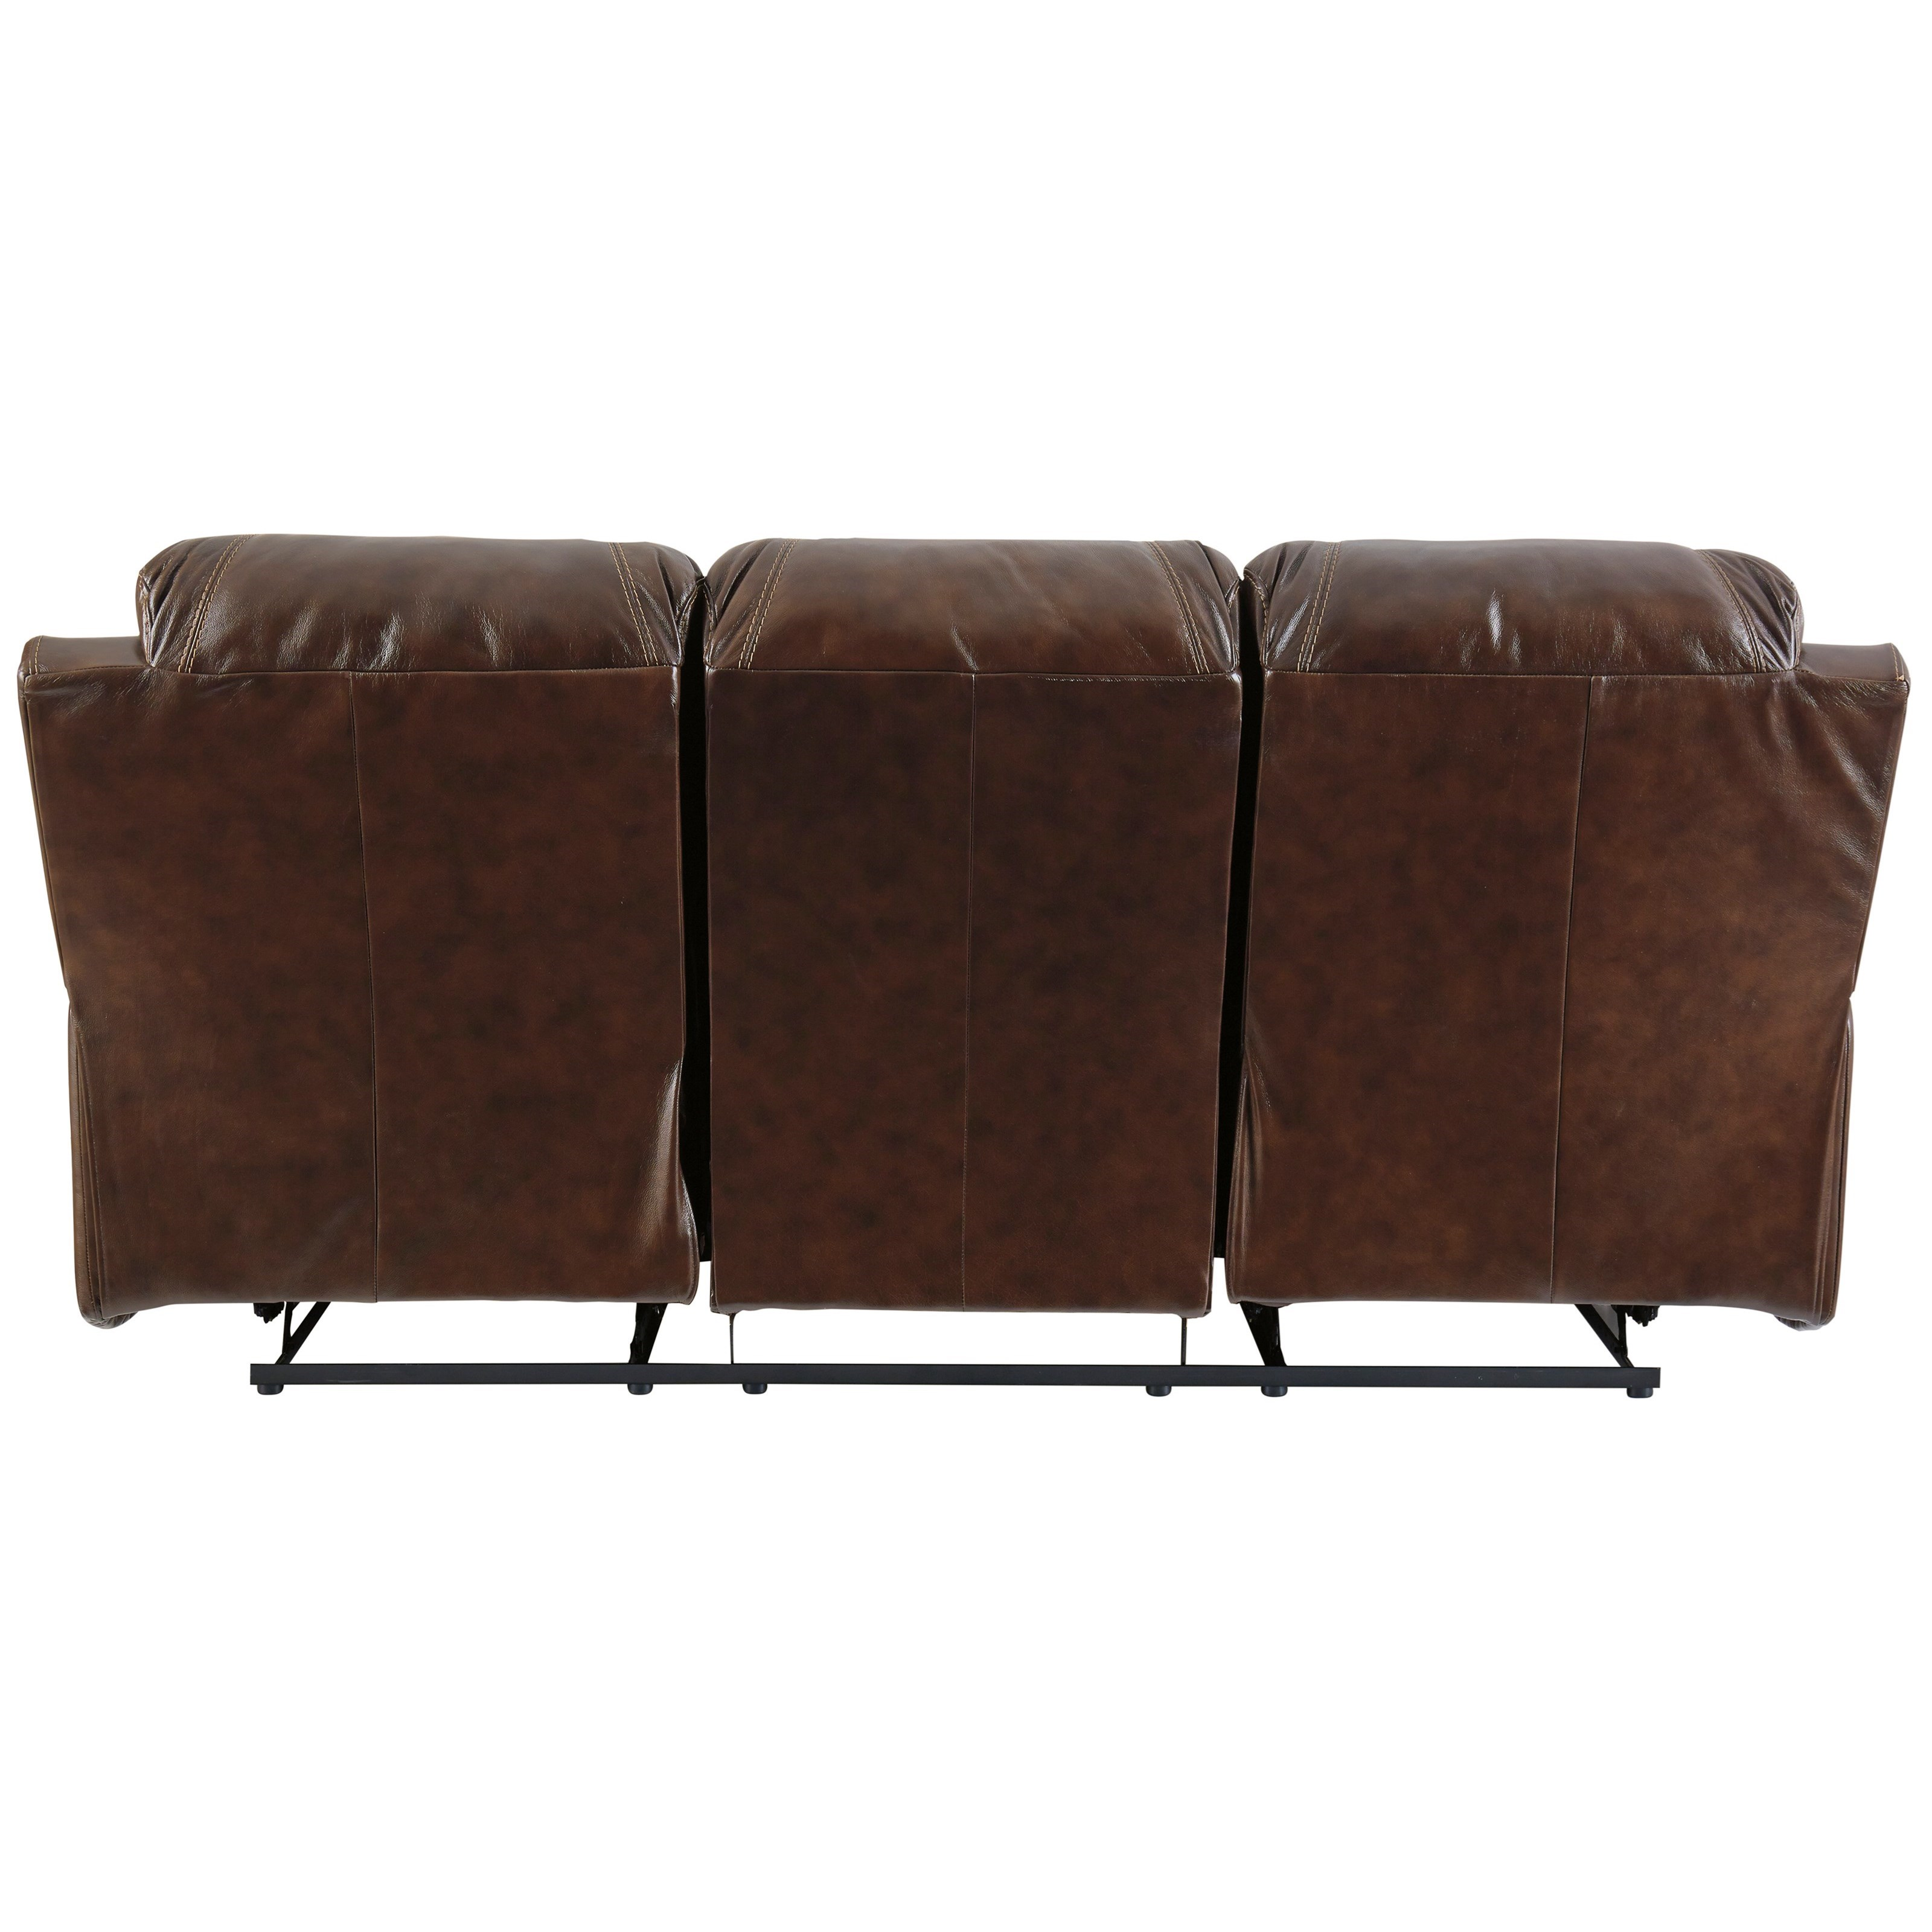 Power Reclining Sofa With Bustle Back By Signature Design